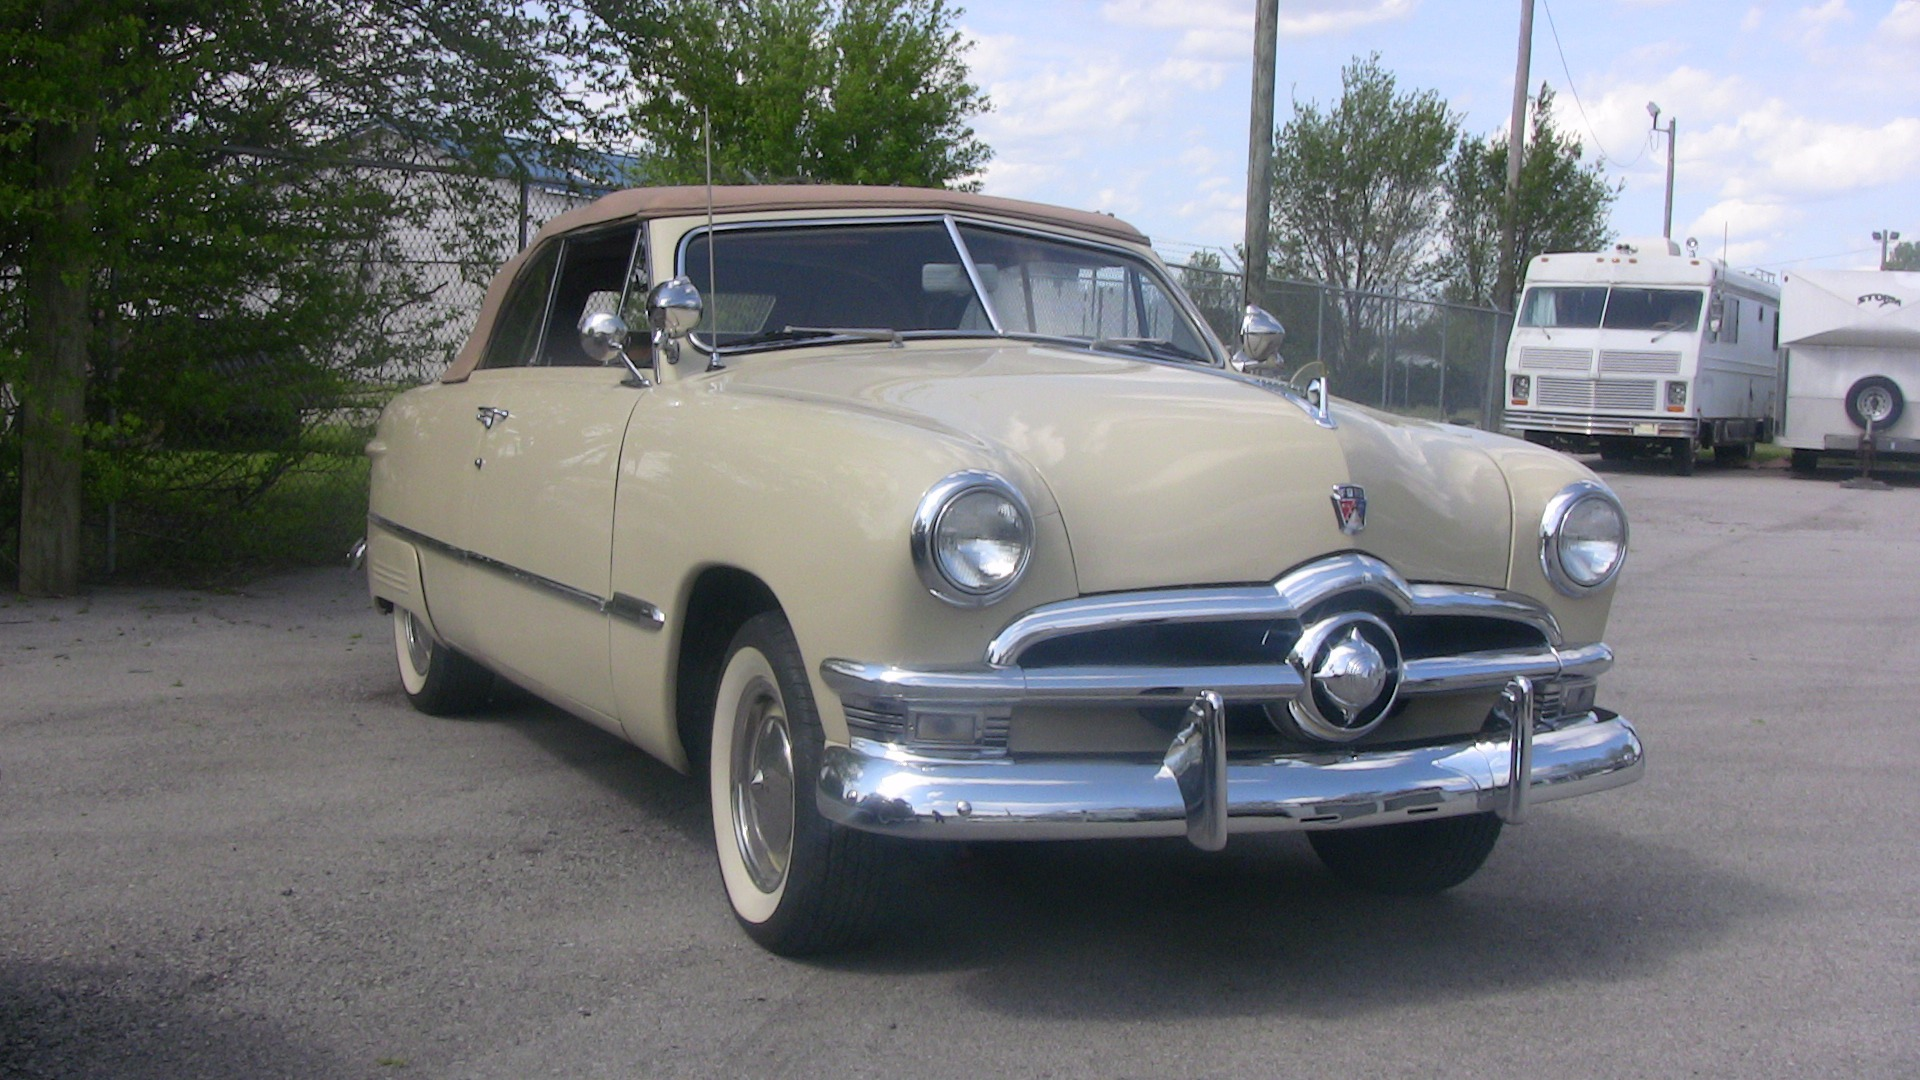 How To Calculate Interest On A Car Loan >> 1950 Ford Convertible Stock # A103 for sale near Cornelius ...